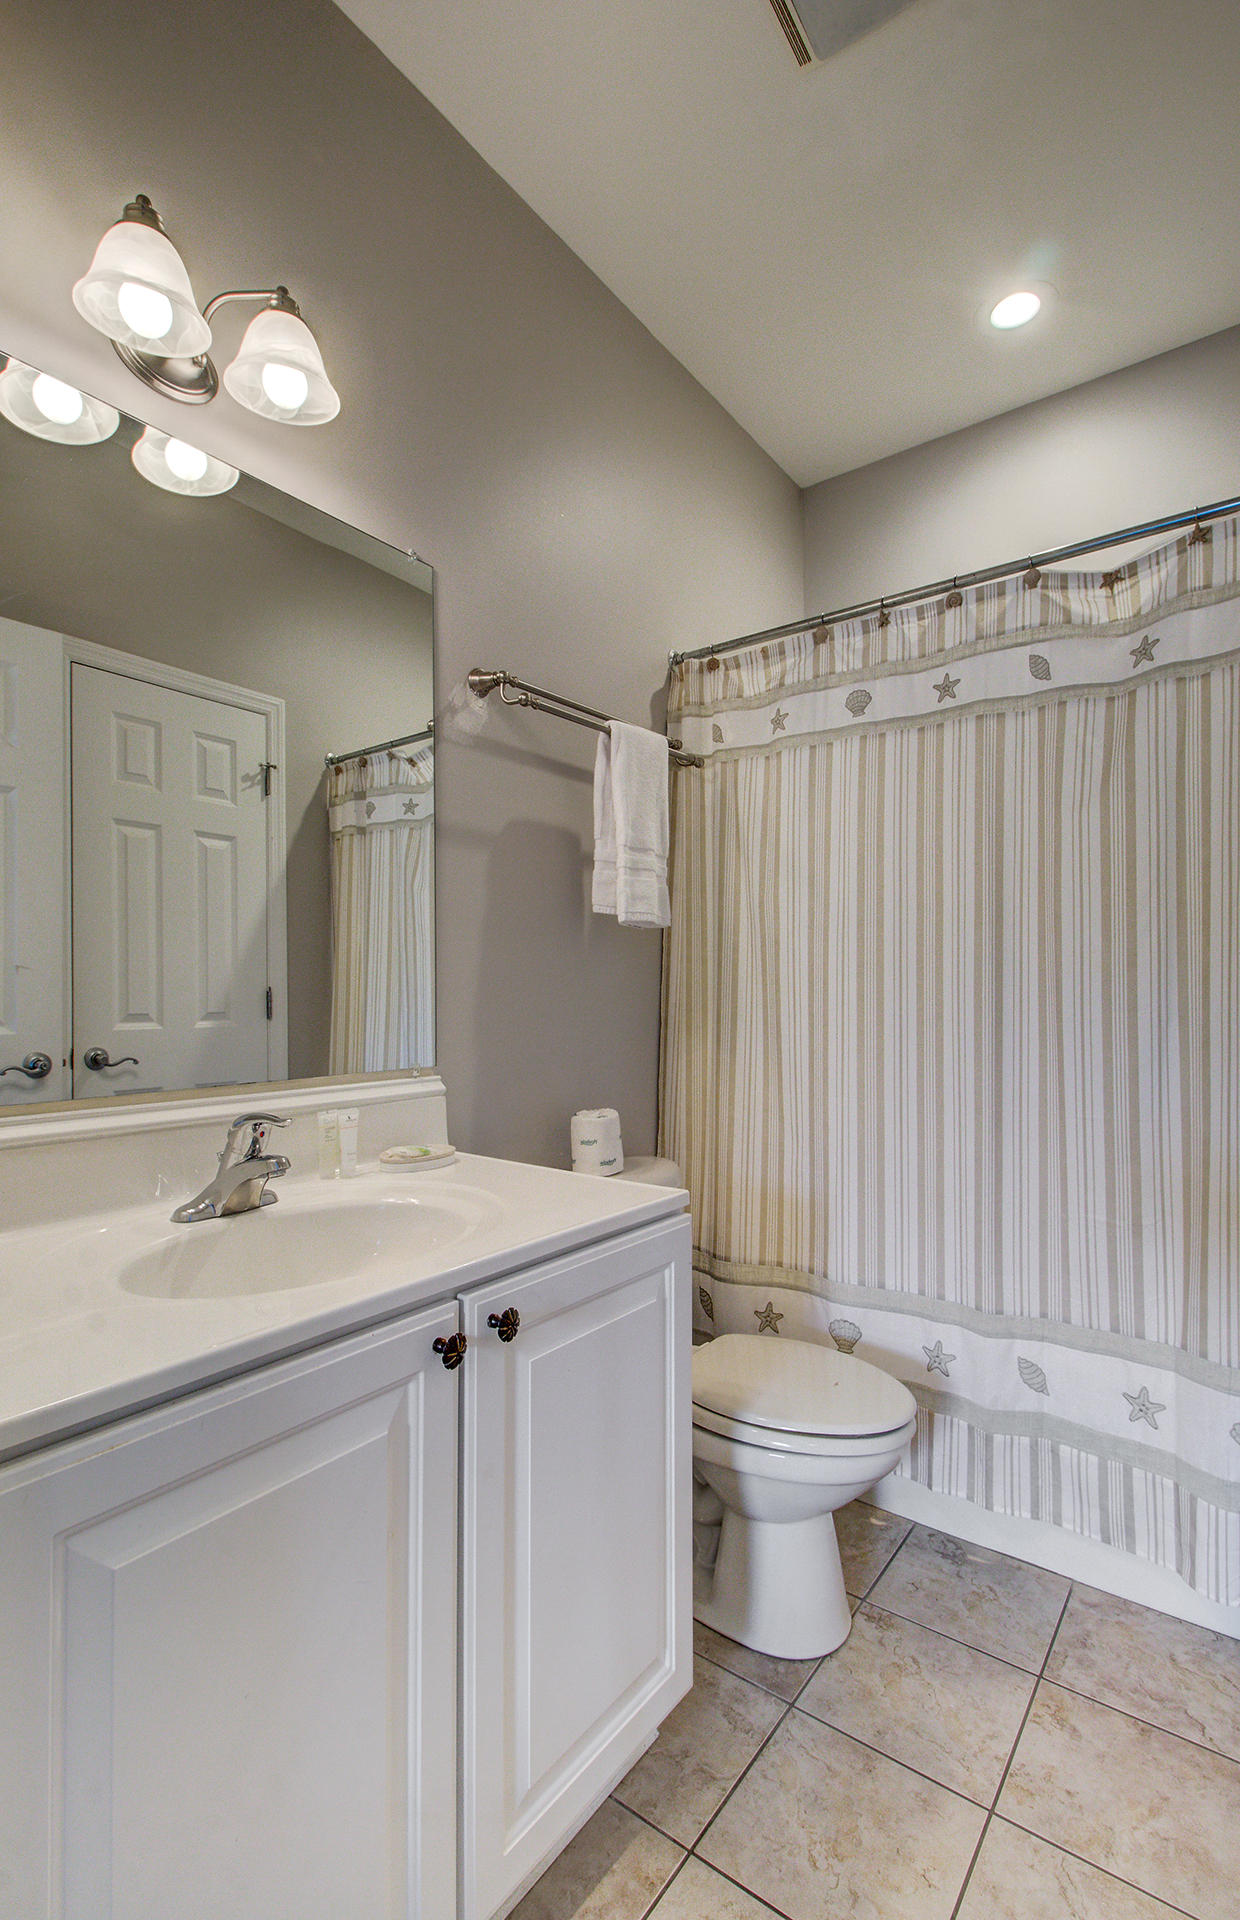 Waters Edge Homes For Sale - 80 2nd, Folly Beach, SC - 58